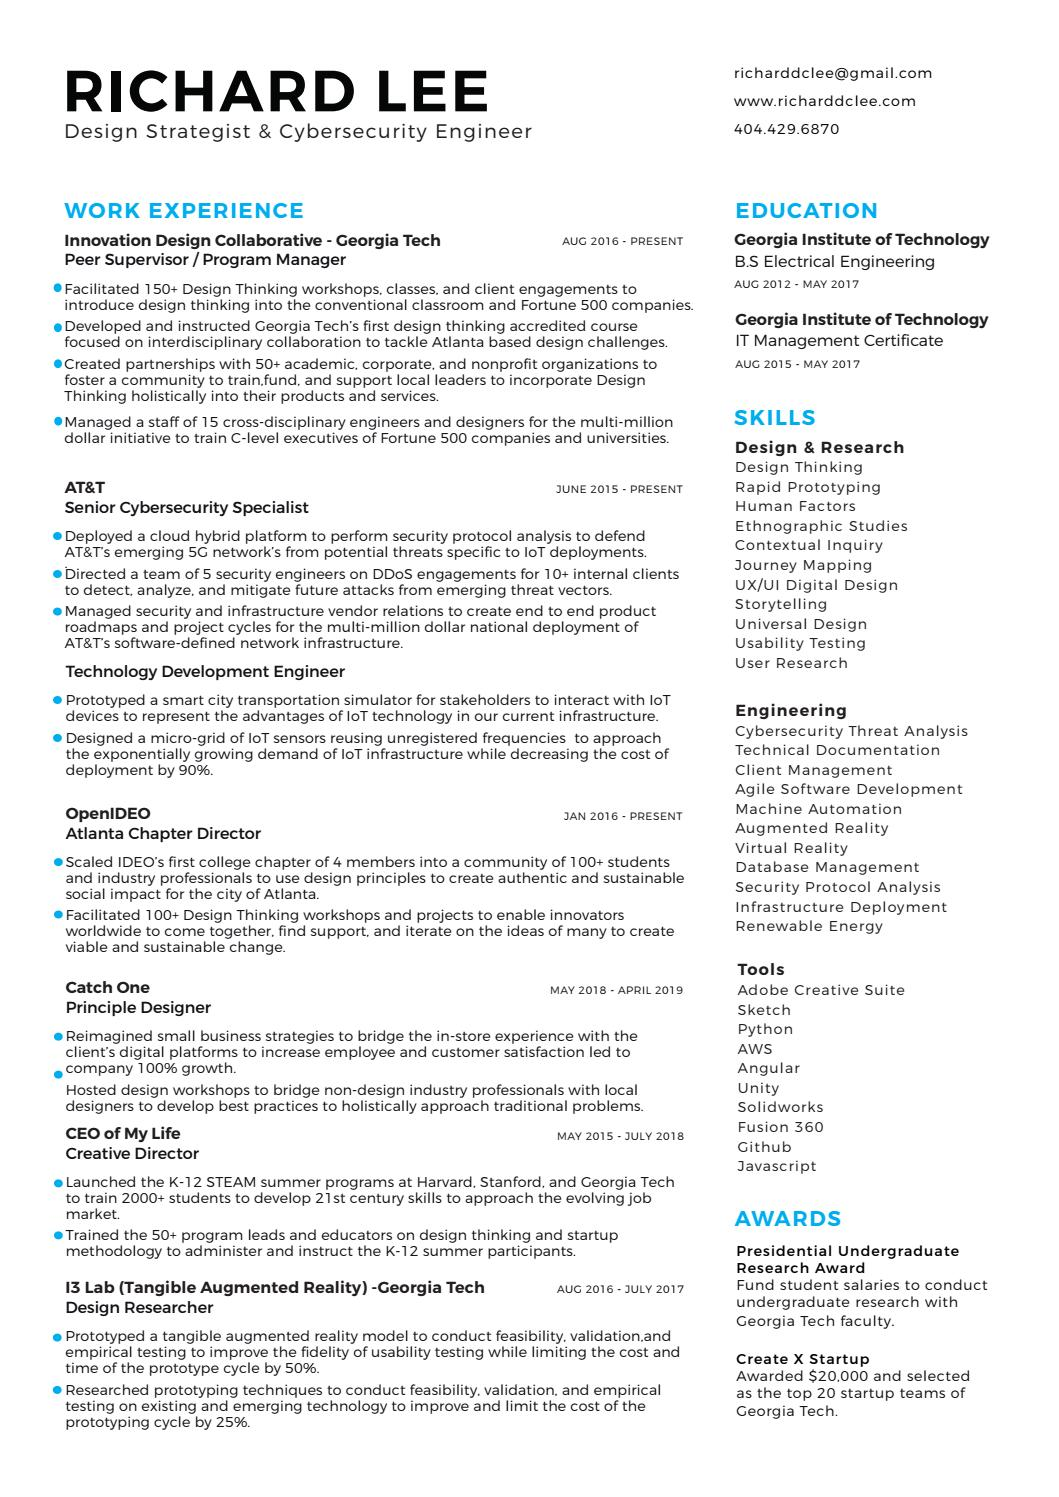 resume by richard issuu augmented reality objective for promotion examples problem Resume Augmented Reality Resume